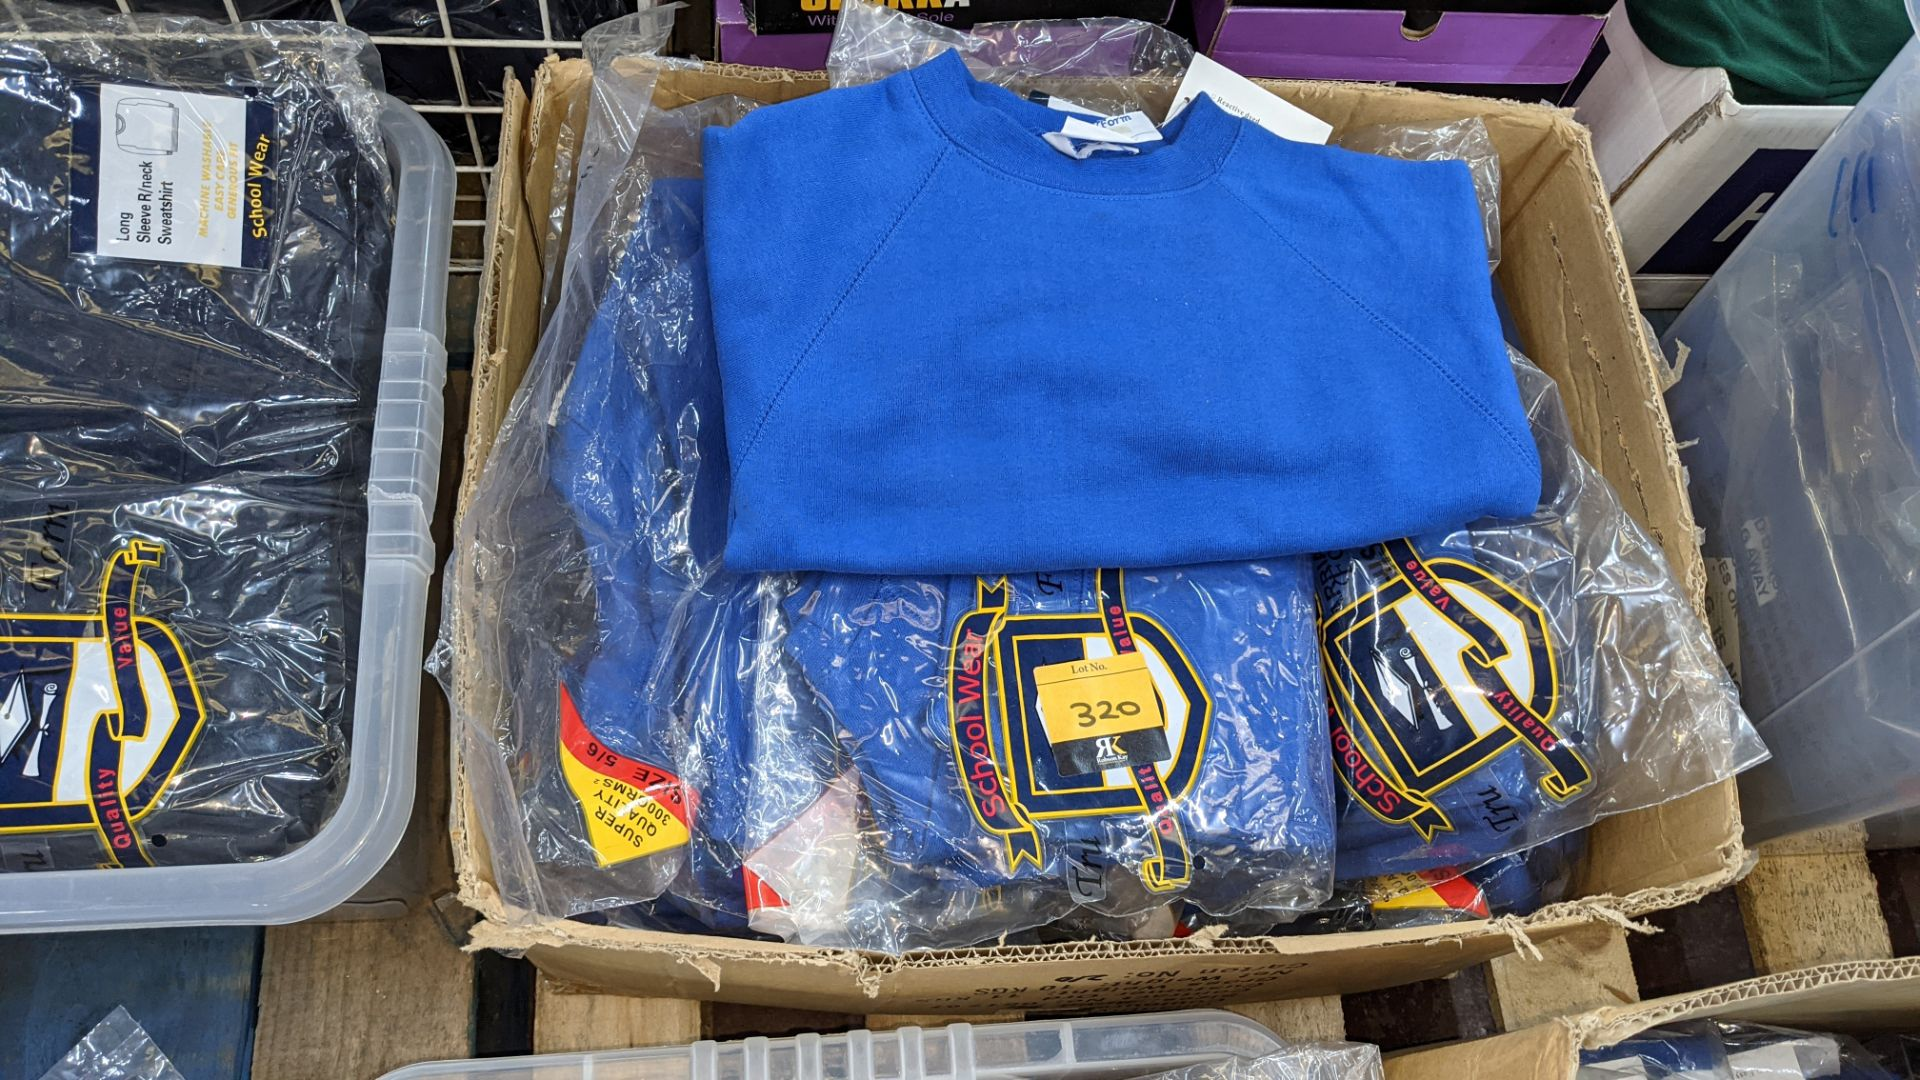 Approx 25 off blue children's sweatshirts & similar - the contents of 1 box - Image 2 of 3